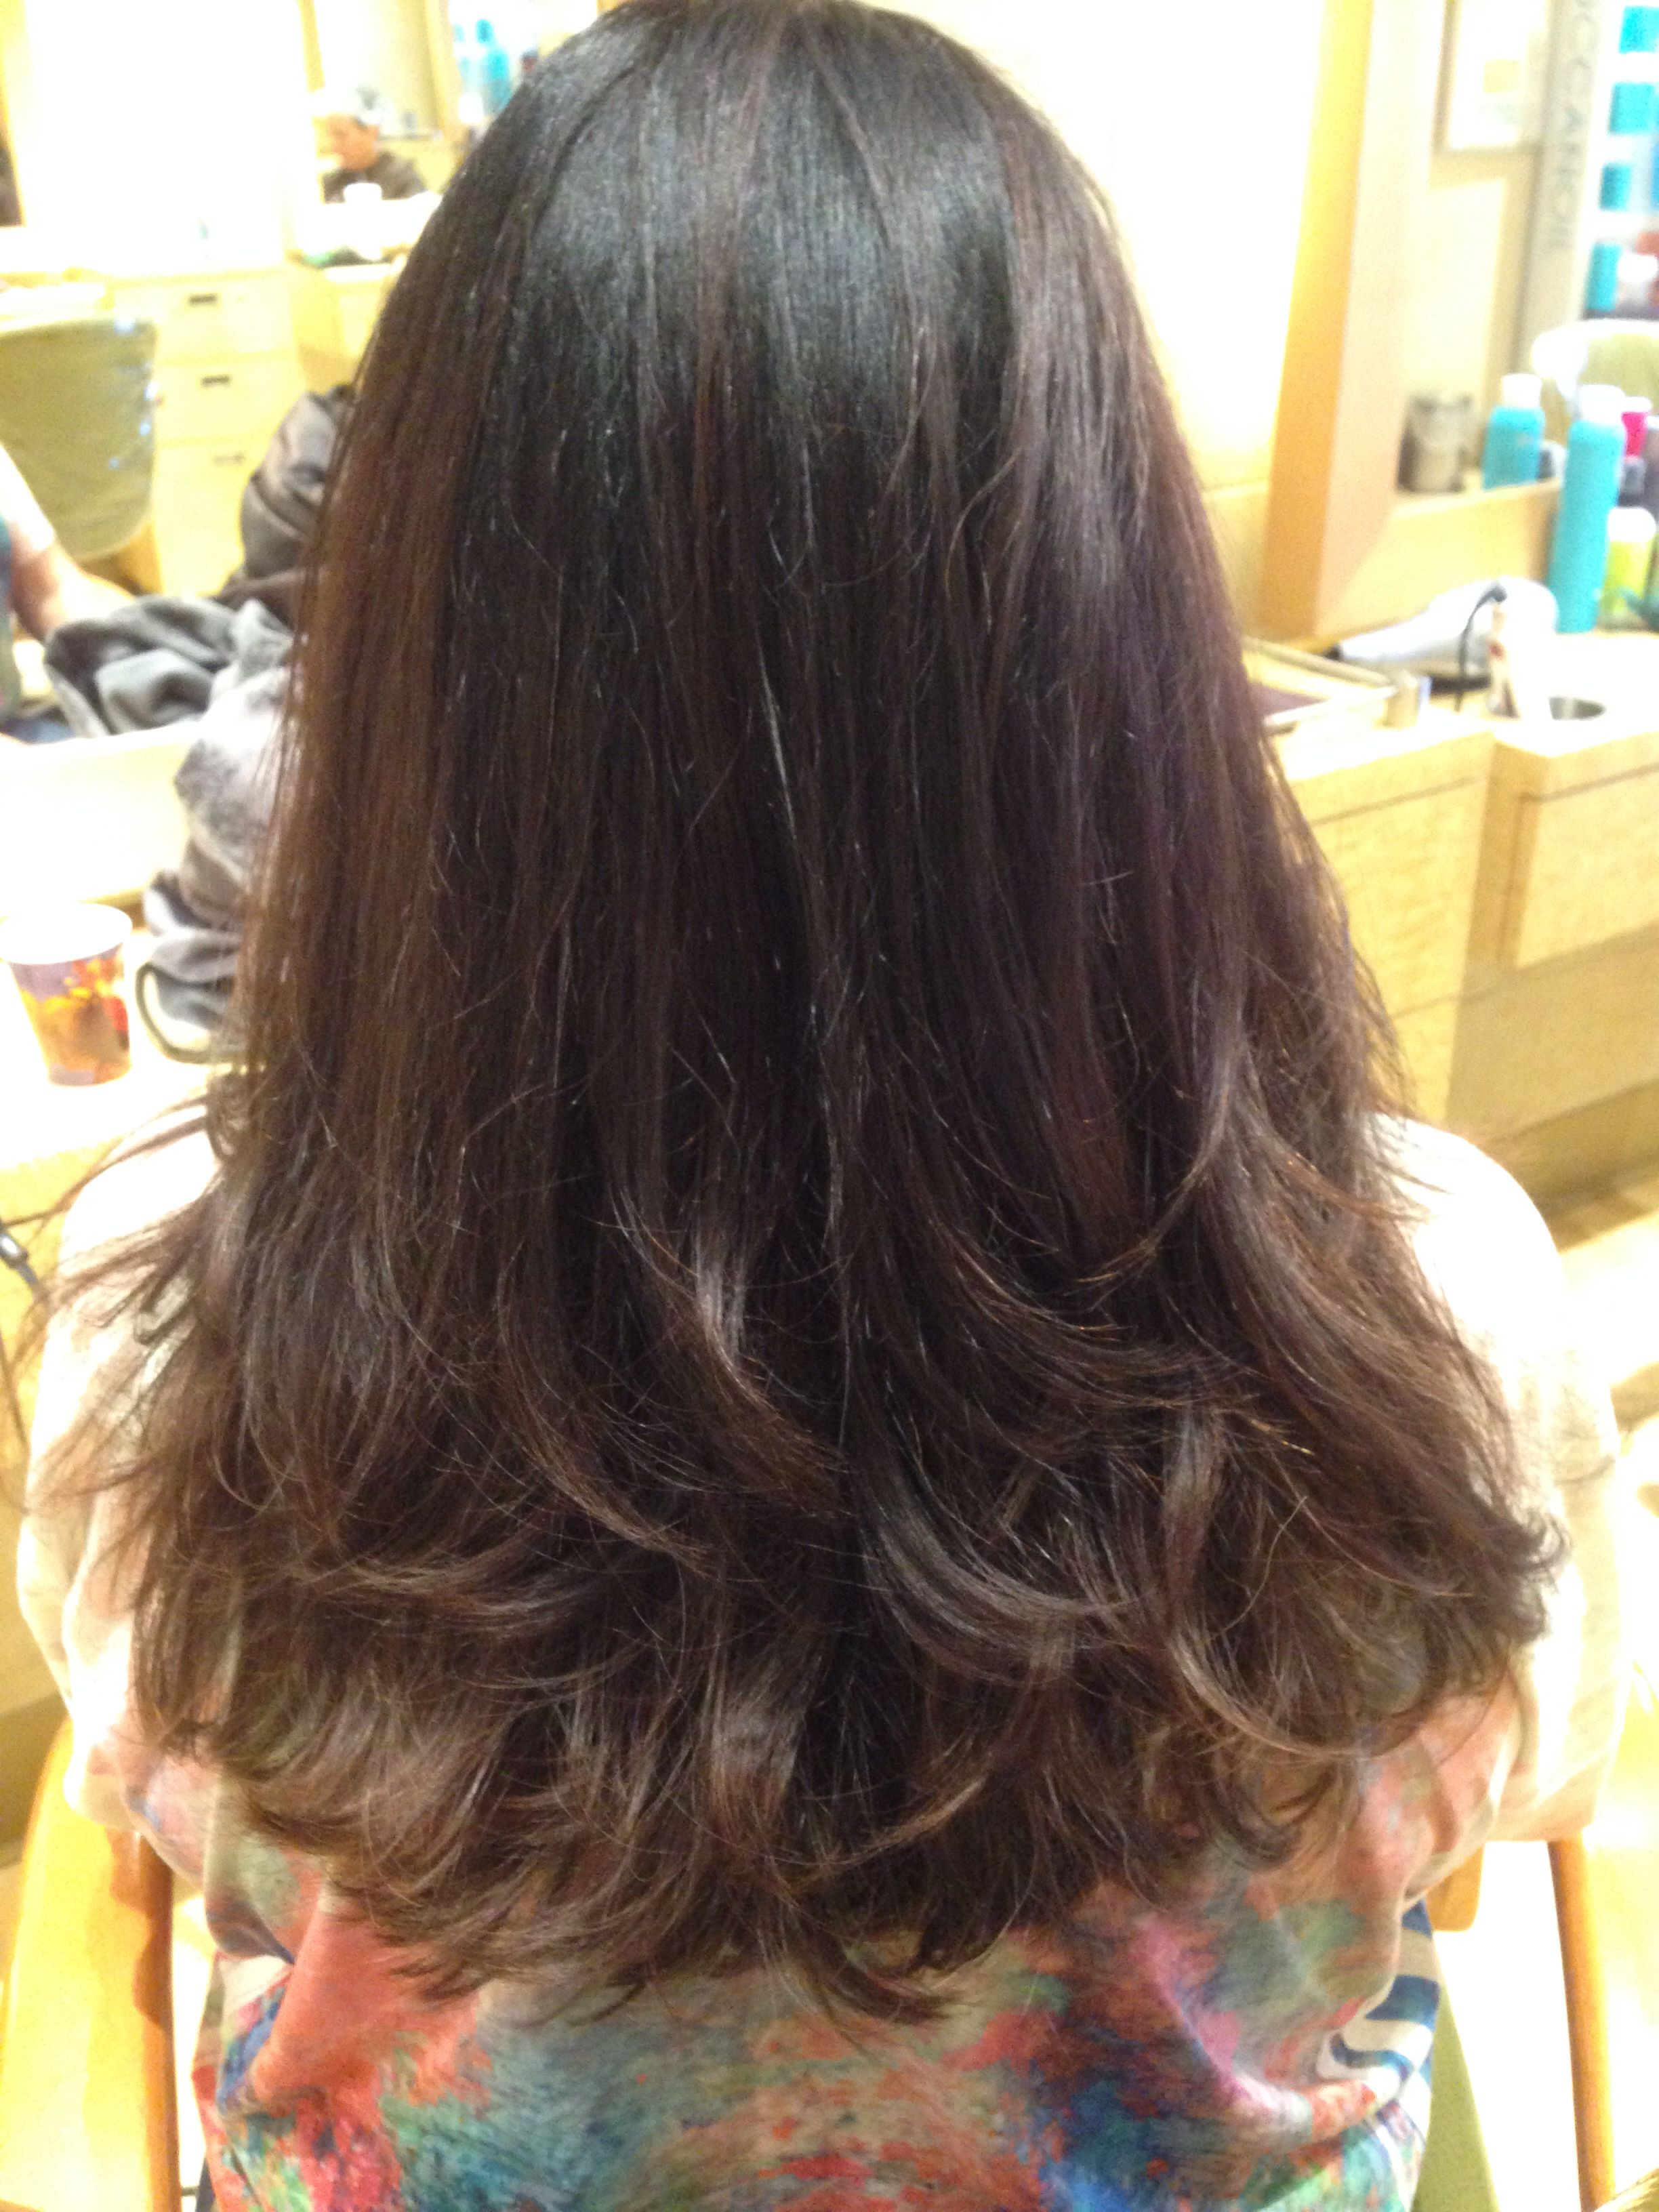 Long Hair Cut With Layering And Texture In The Bottom (View 18 of 20)